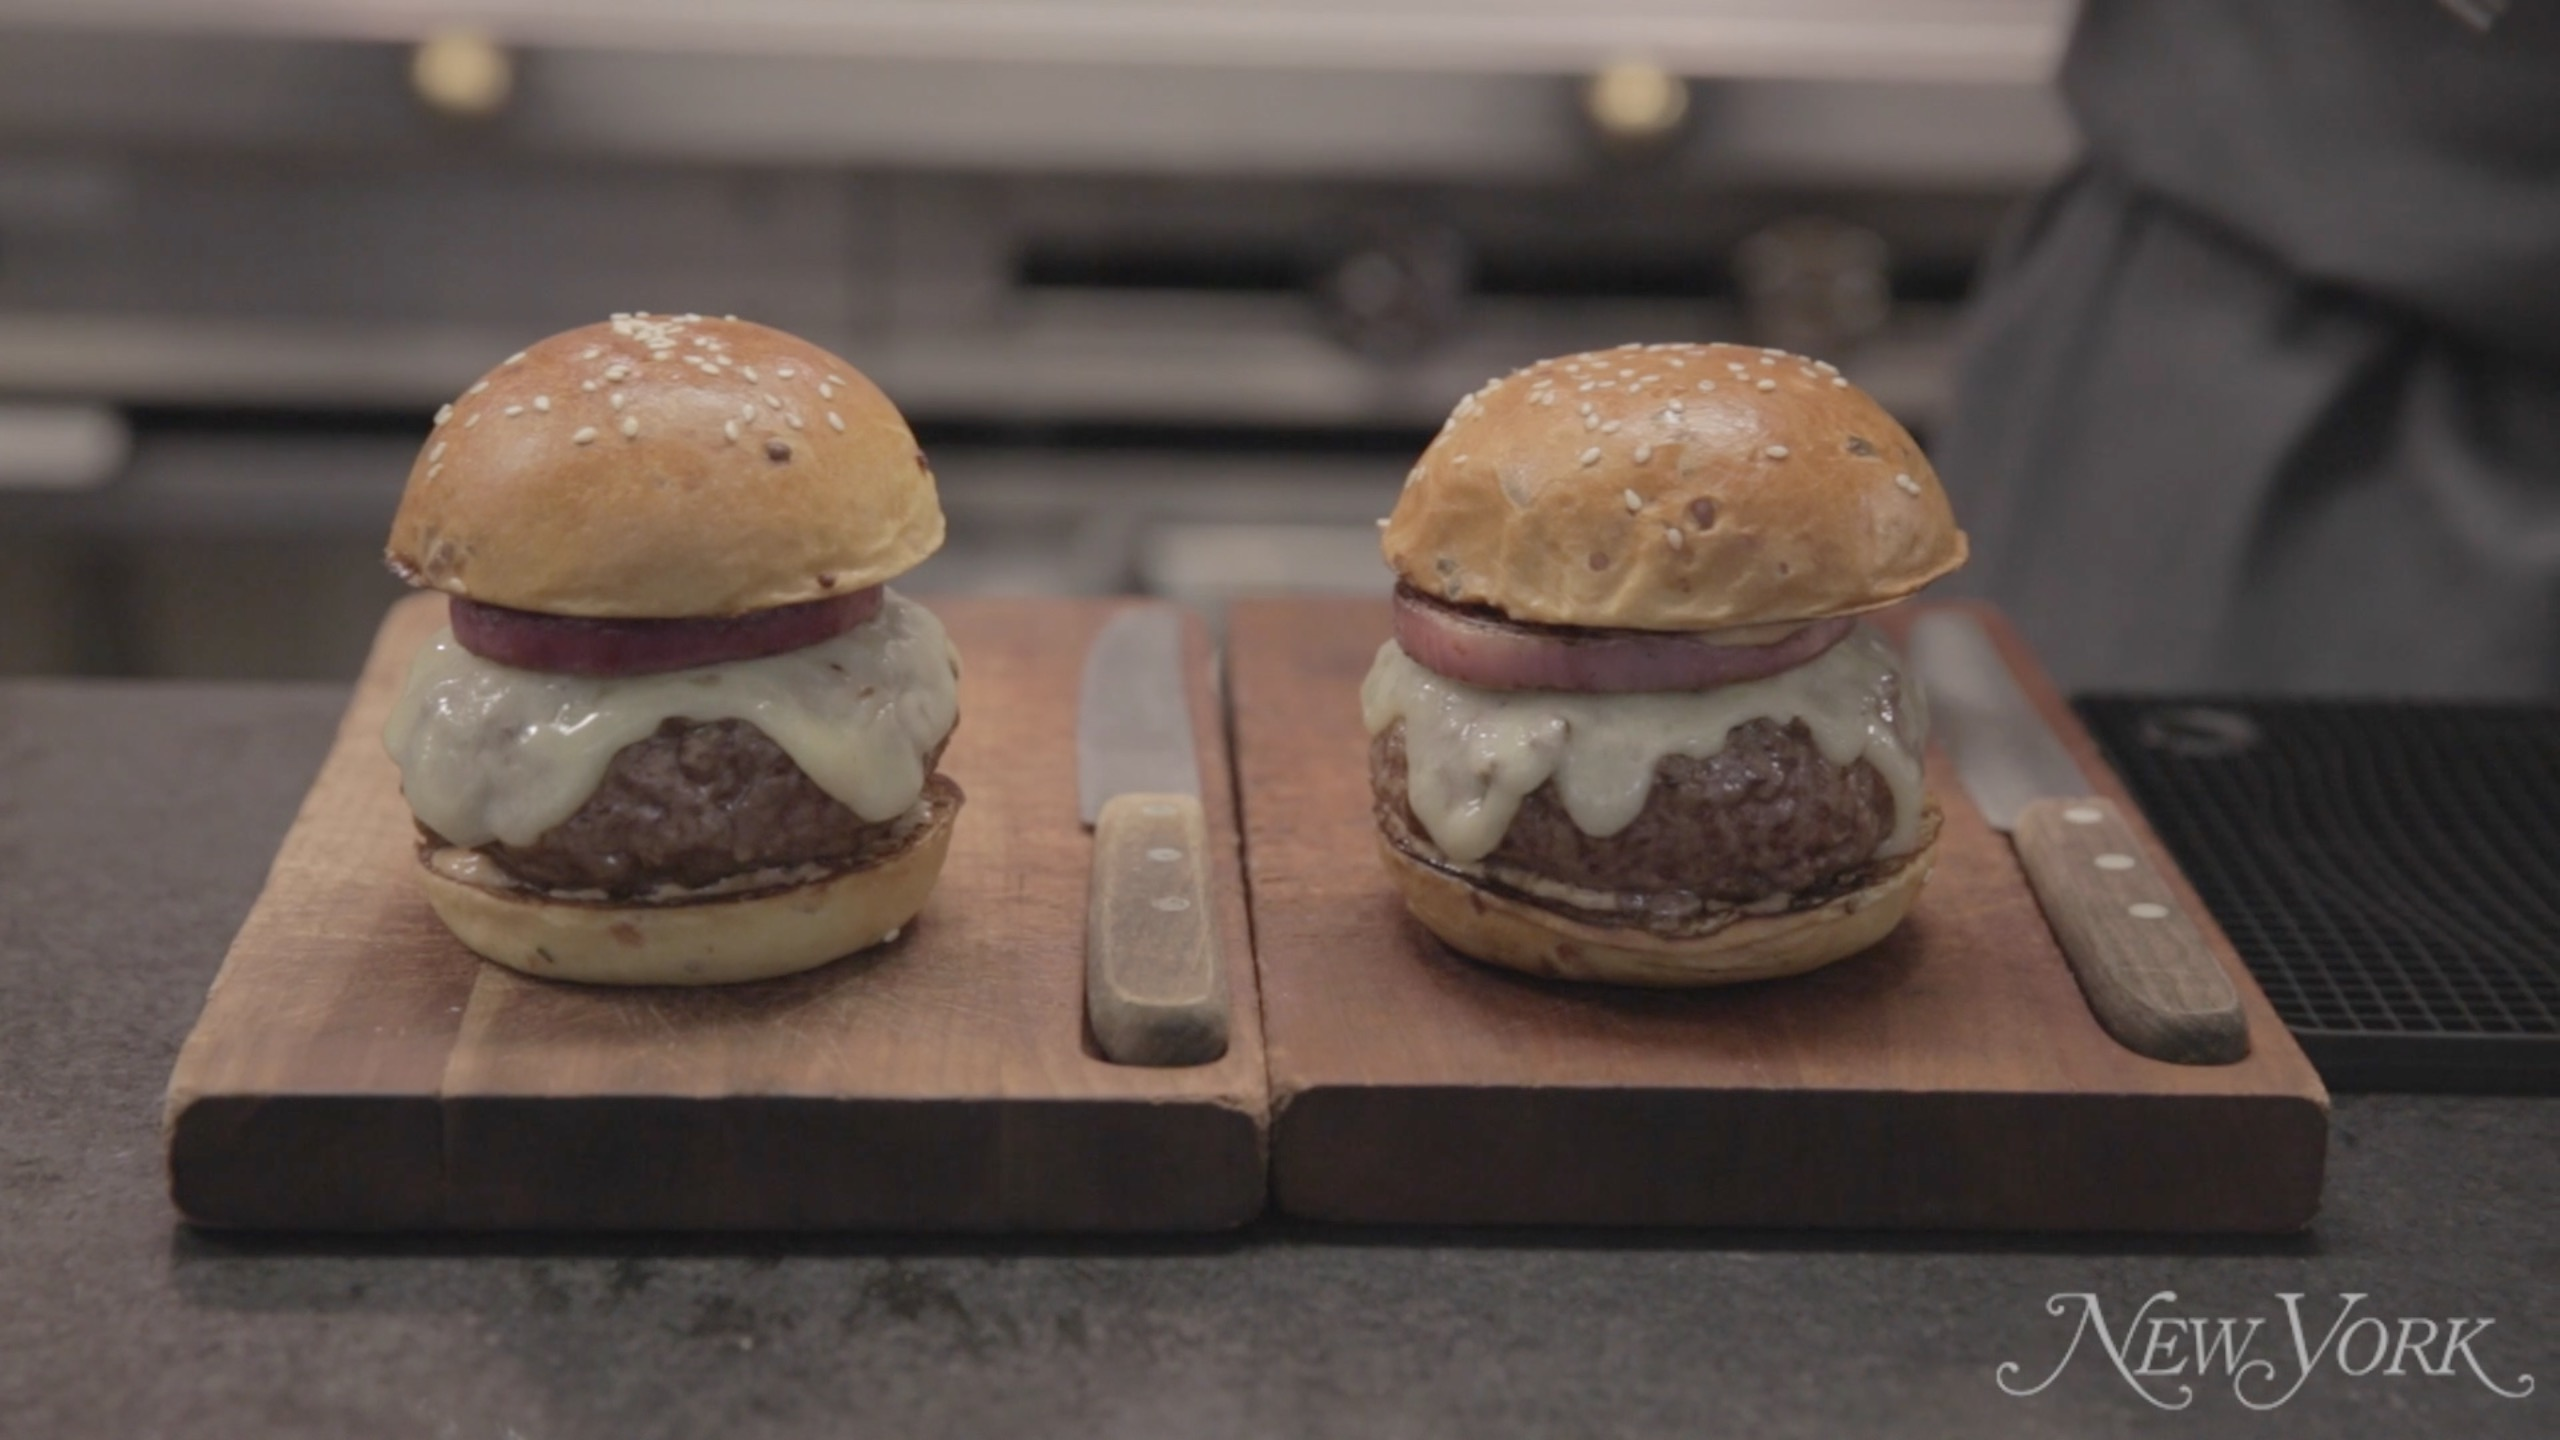 How to Make the Nomad Burger